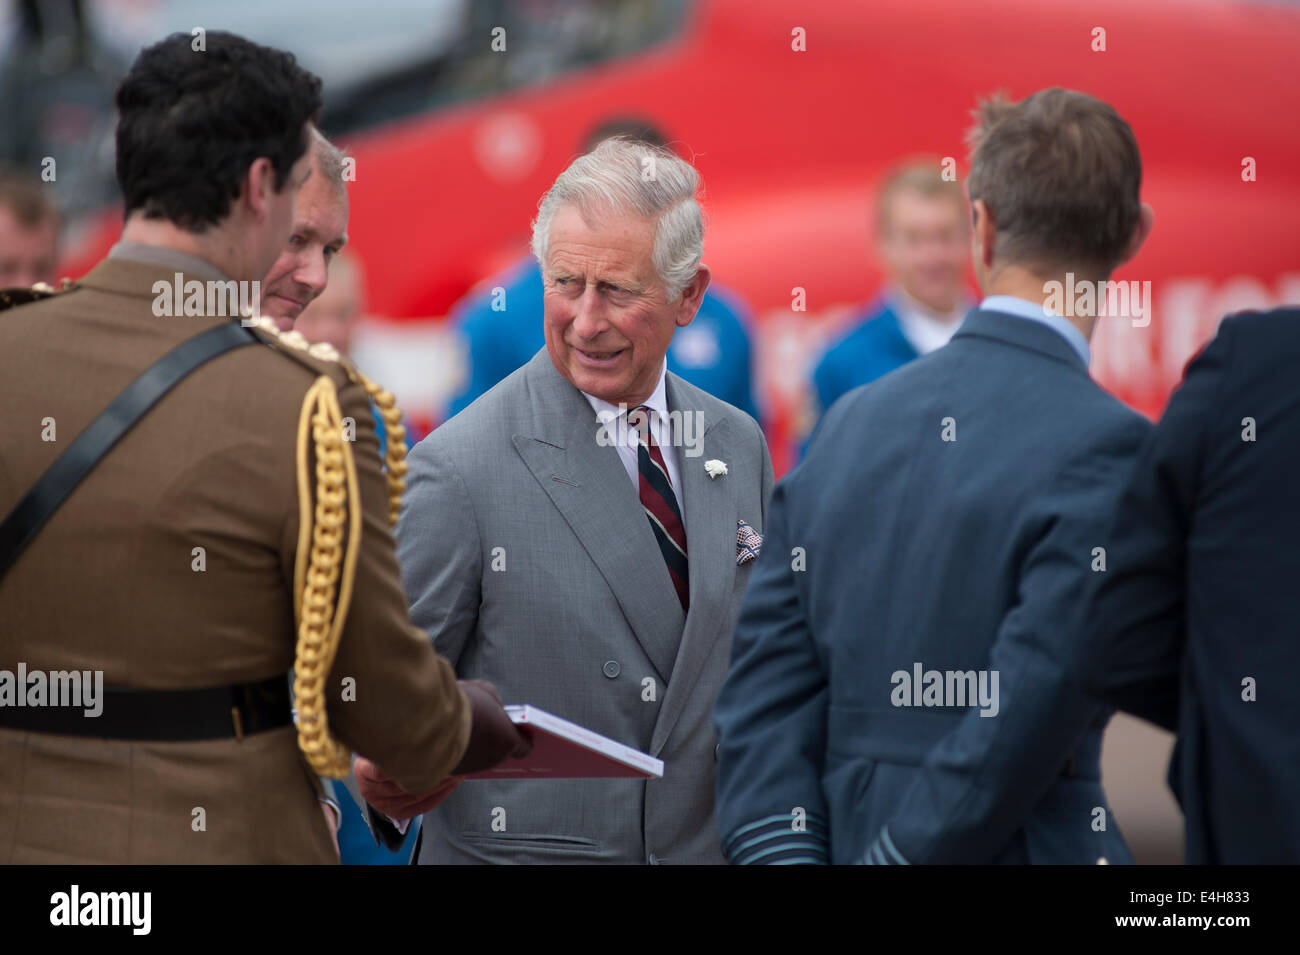 RAF Fairford, Gloucestershire UK  11th July 2014  HRH The